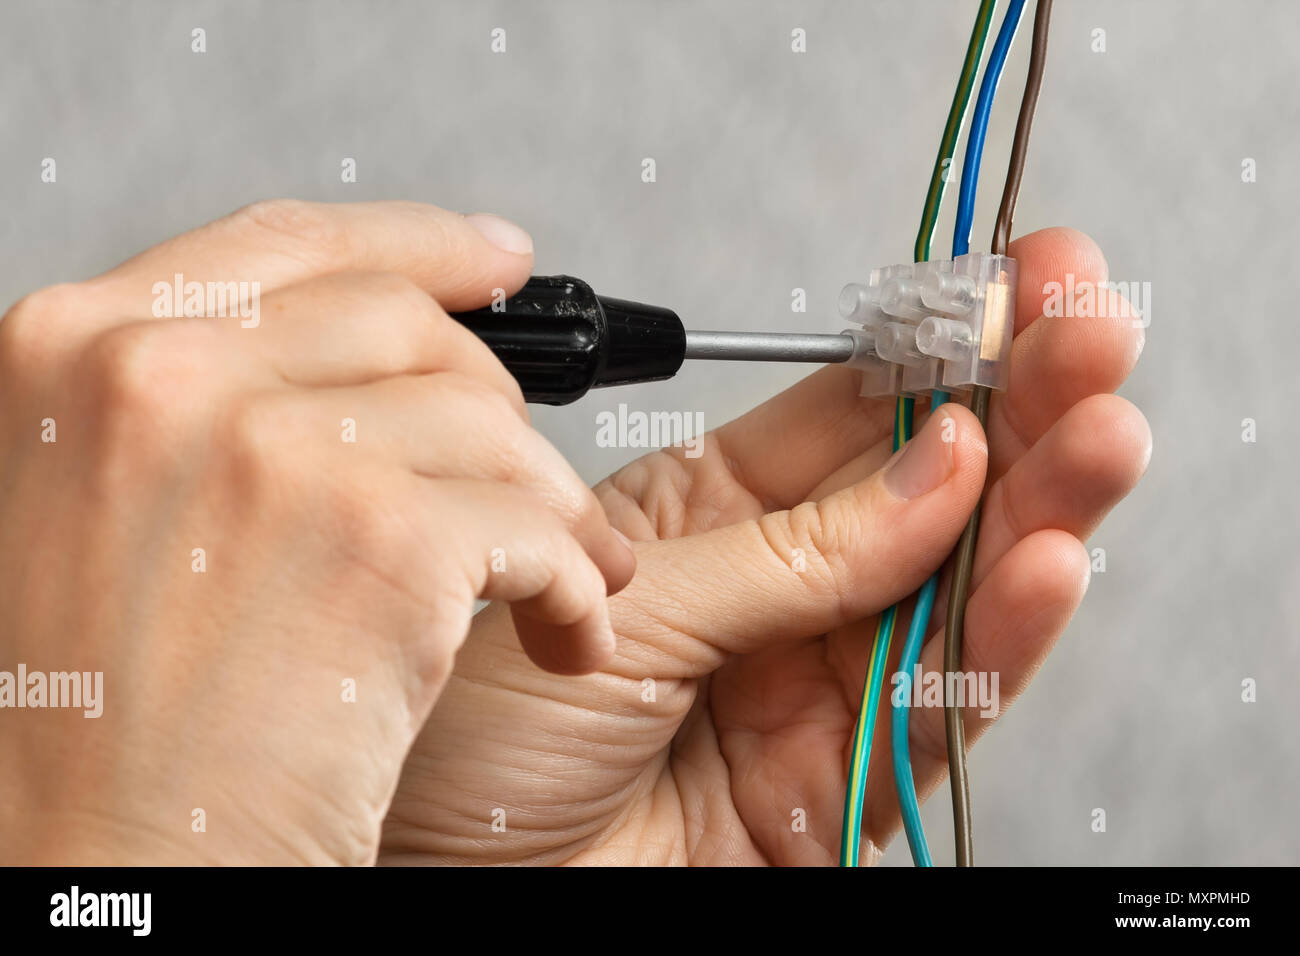 Wire Connector Terminal Block Stock Photos Auto Wiring Blocks Hands Connecting Wires In With Screwdriver Image